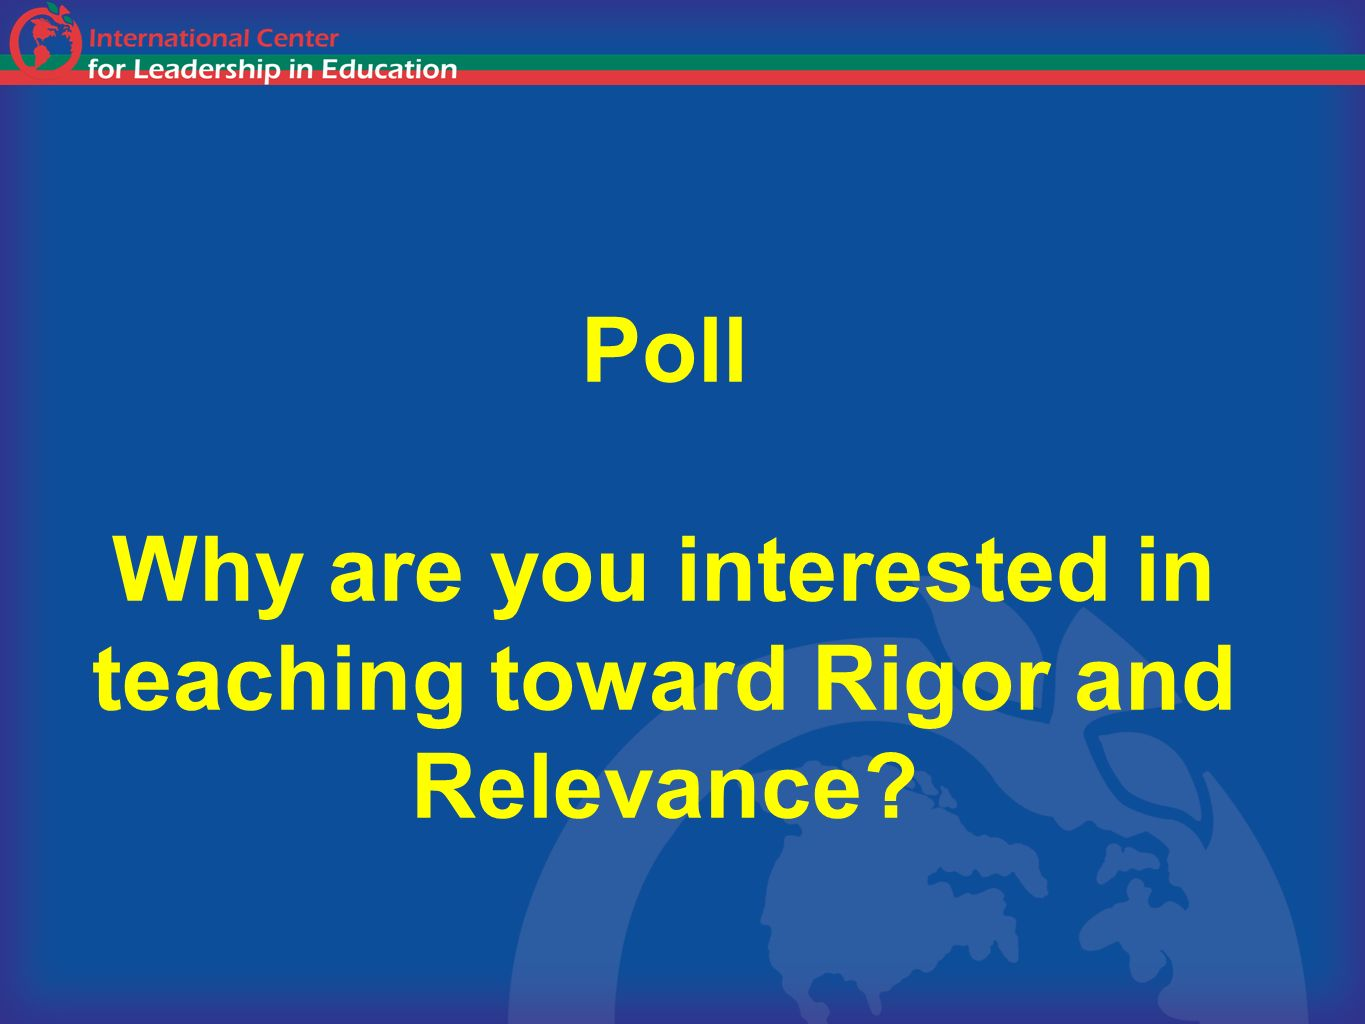 Poll Why are you interested in teaching toward Rigor and Relevance?